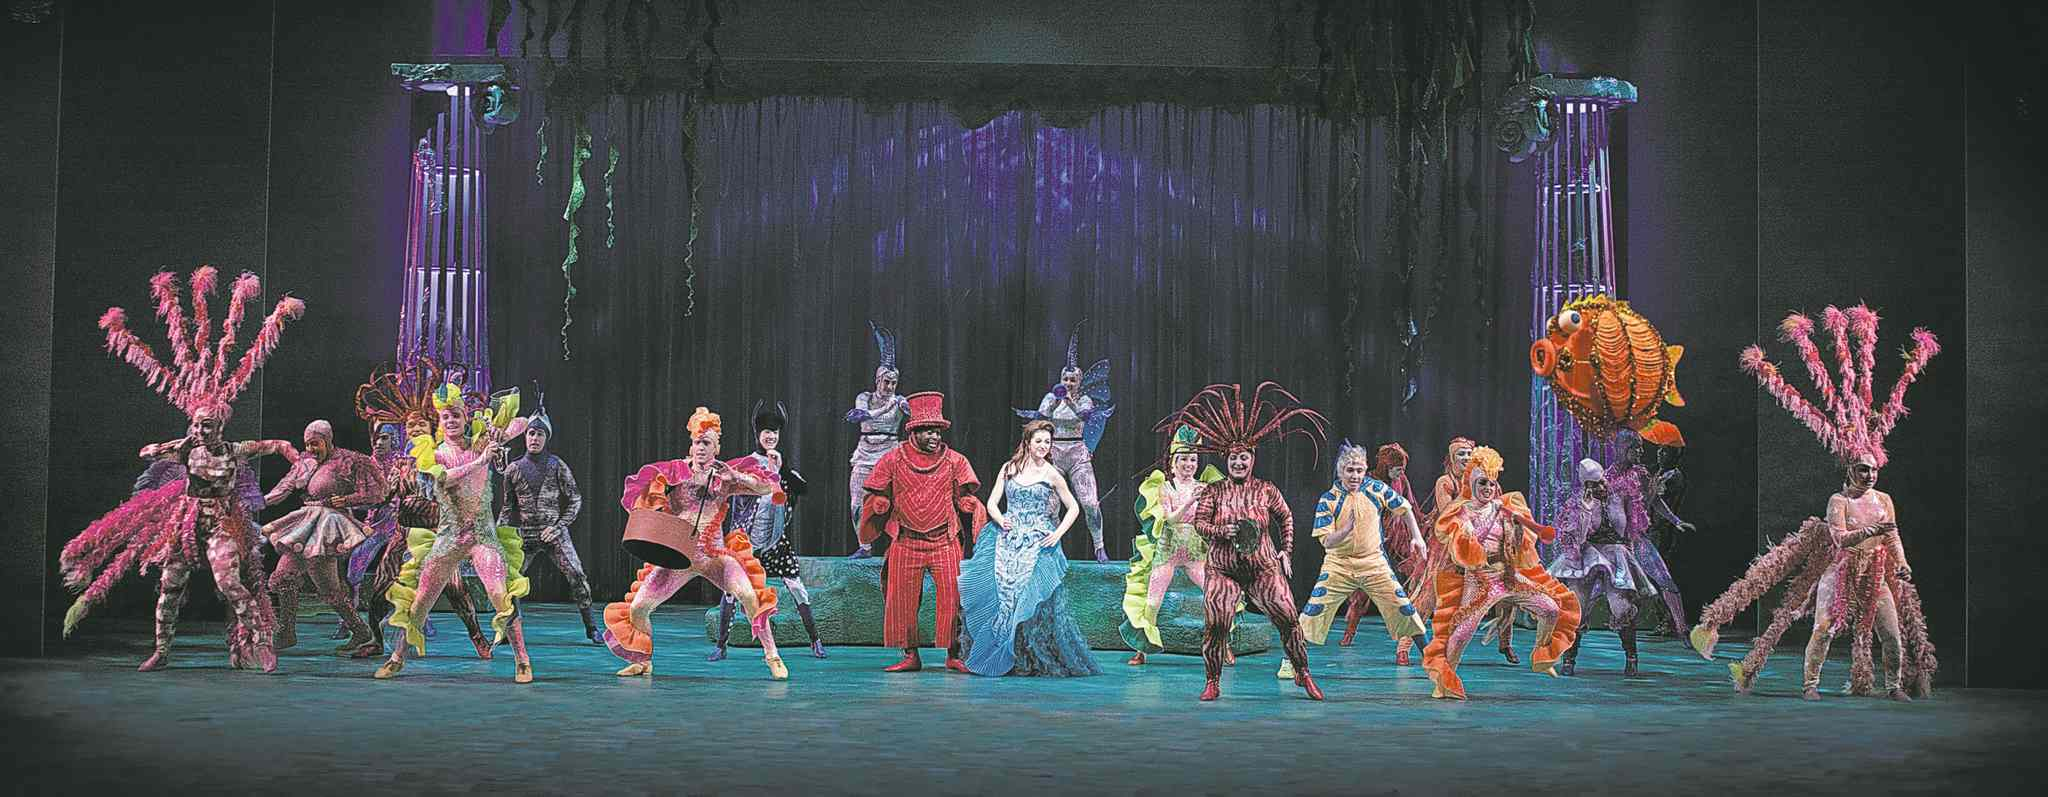 The colourful cast of Disney's The Little Mermaid will make audiences feel as if they're in an aquarium of exotic sea creatures